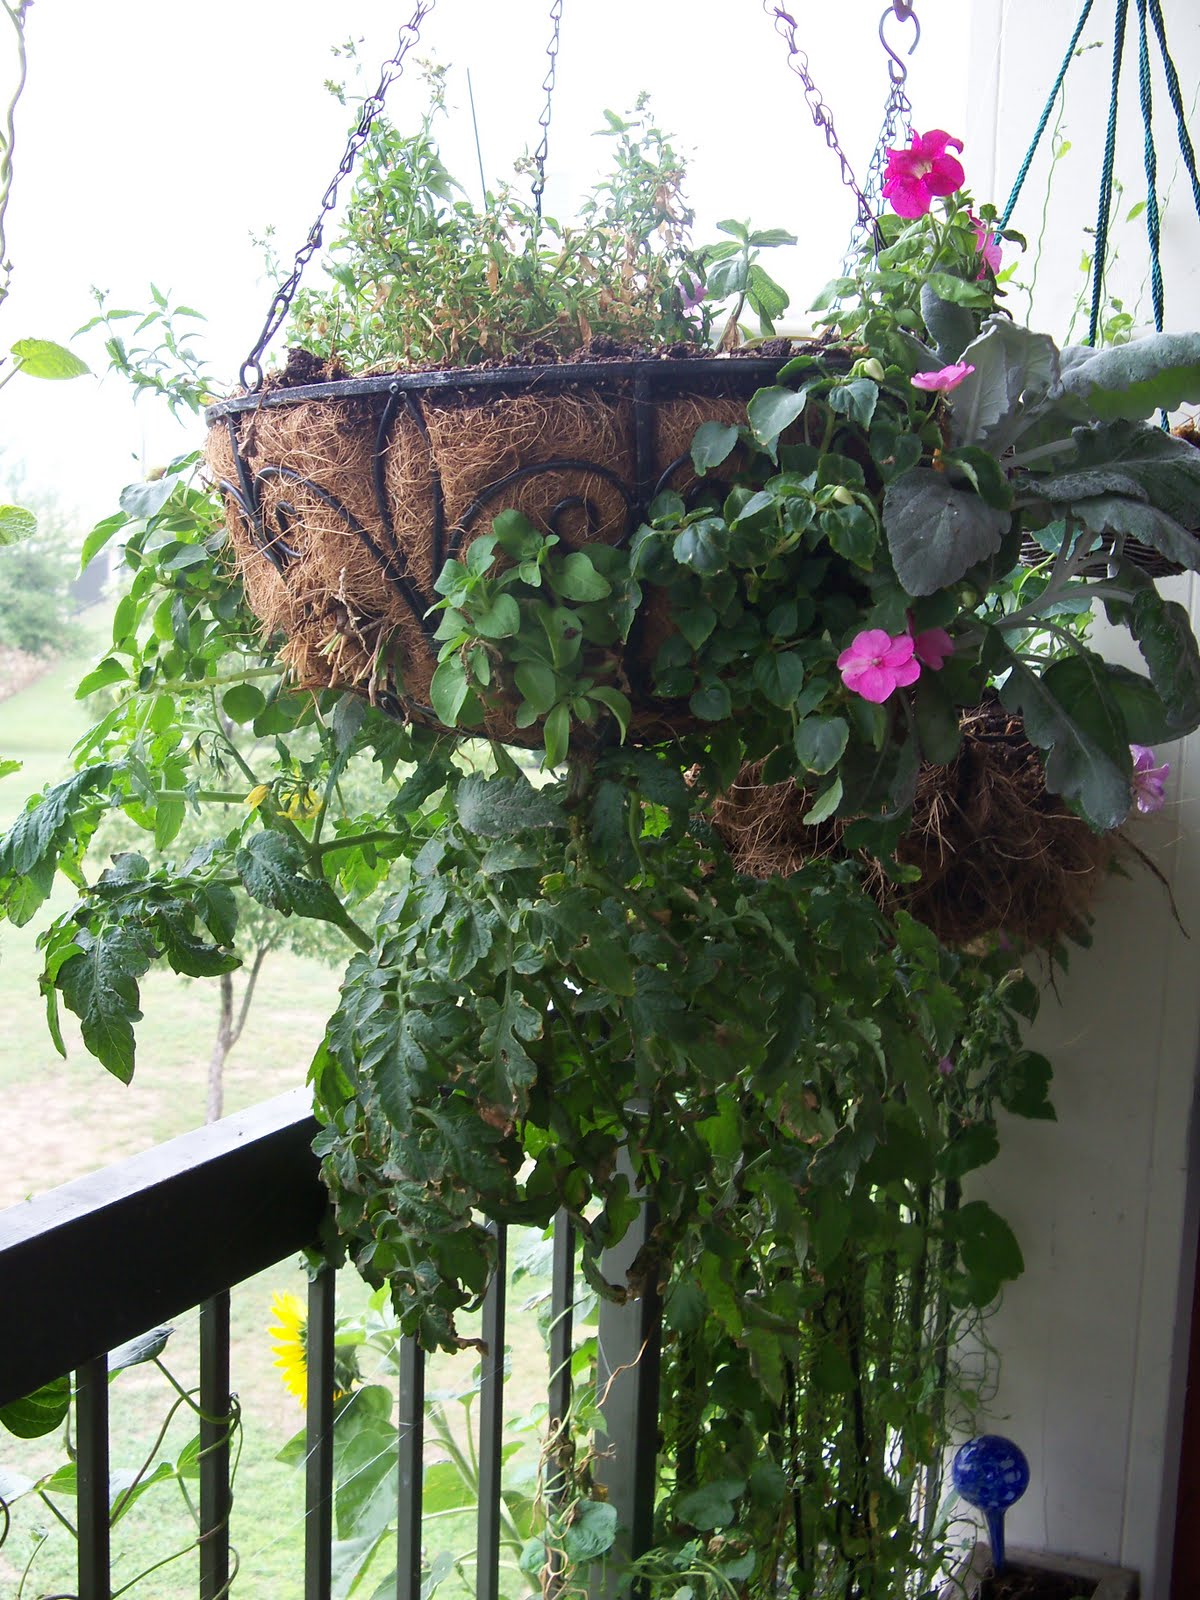 My Largest Hanging Basket With My Upside Down Tomato Plant, Dusty Miller  And Annual Flowers.